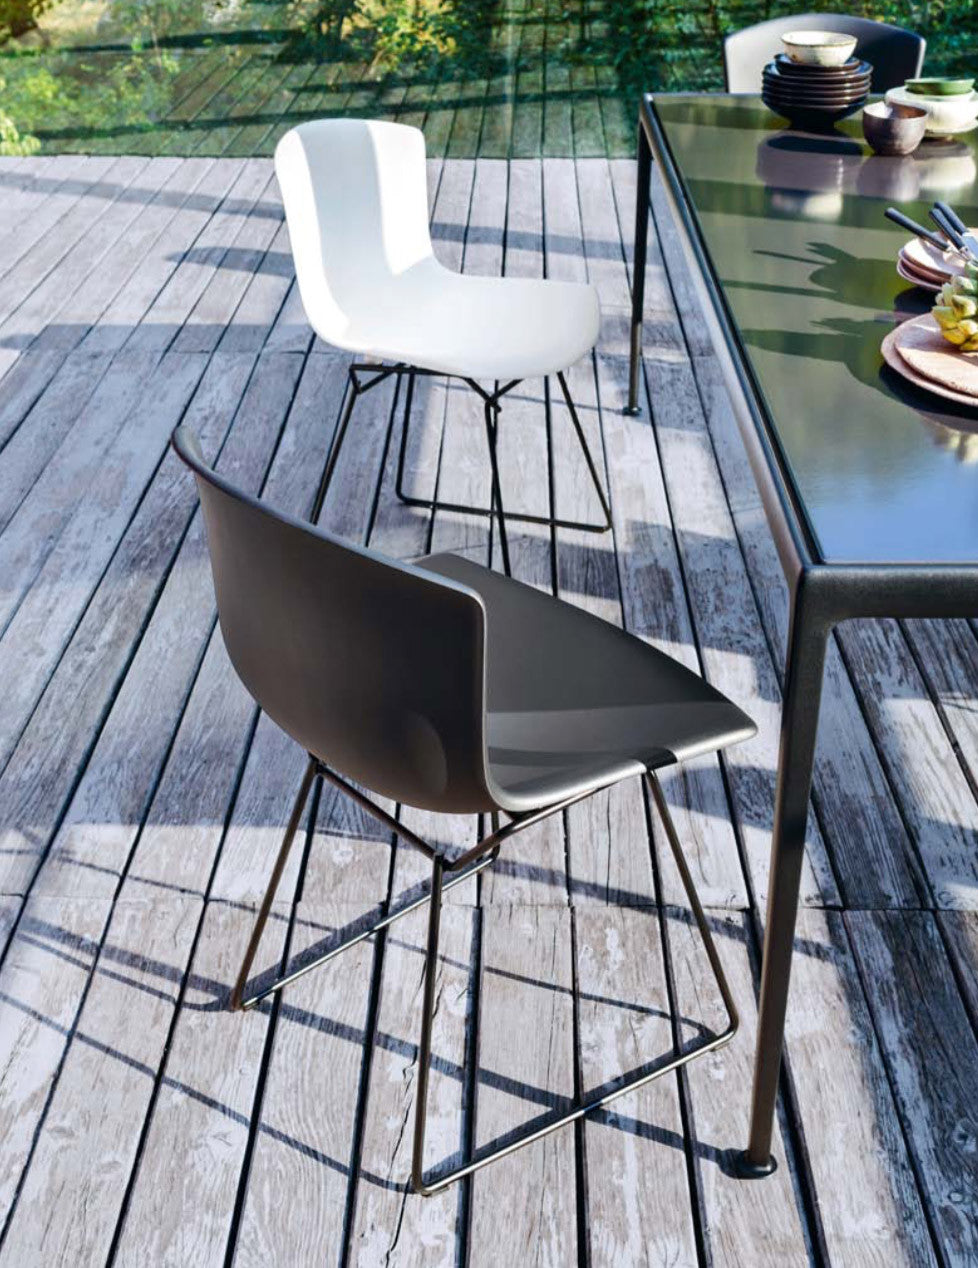 Bertoia Plastic Side Chair Outdoor Couch Potato Company